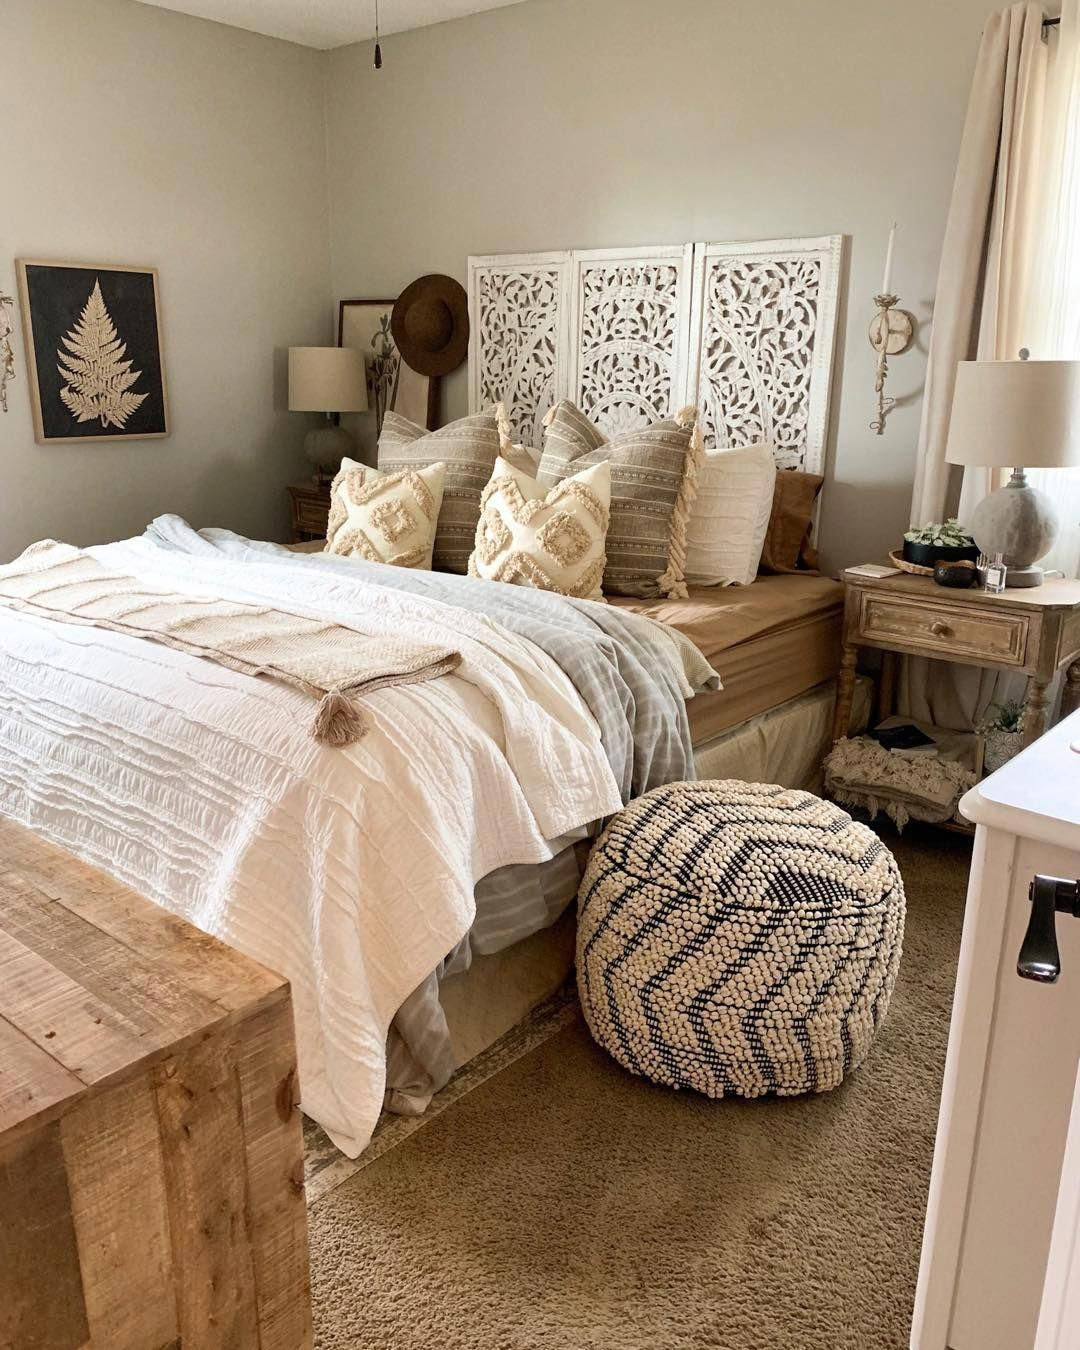 25 Small Bedroom Ideas That Are Look Stylishly & Space ...